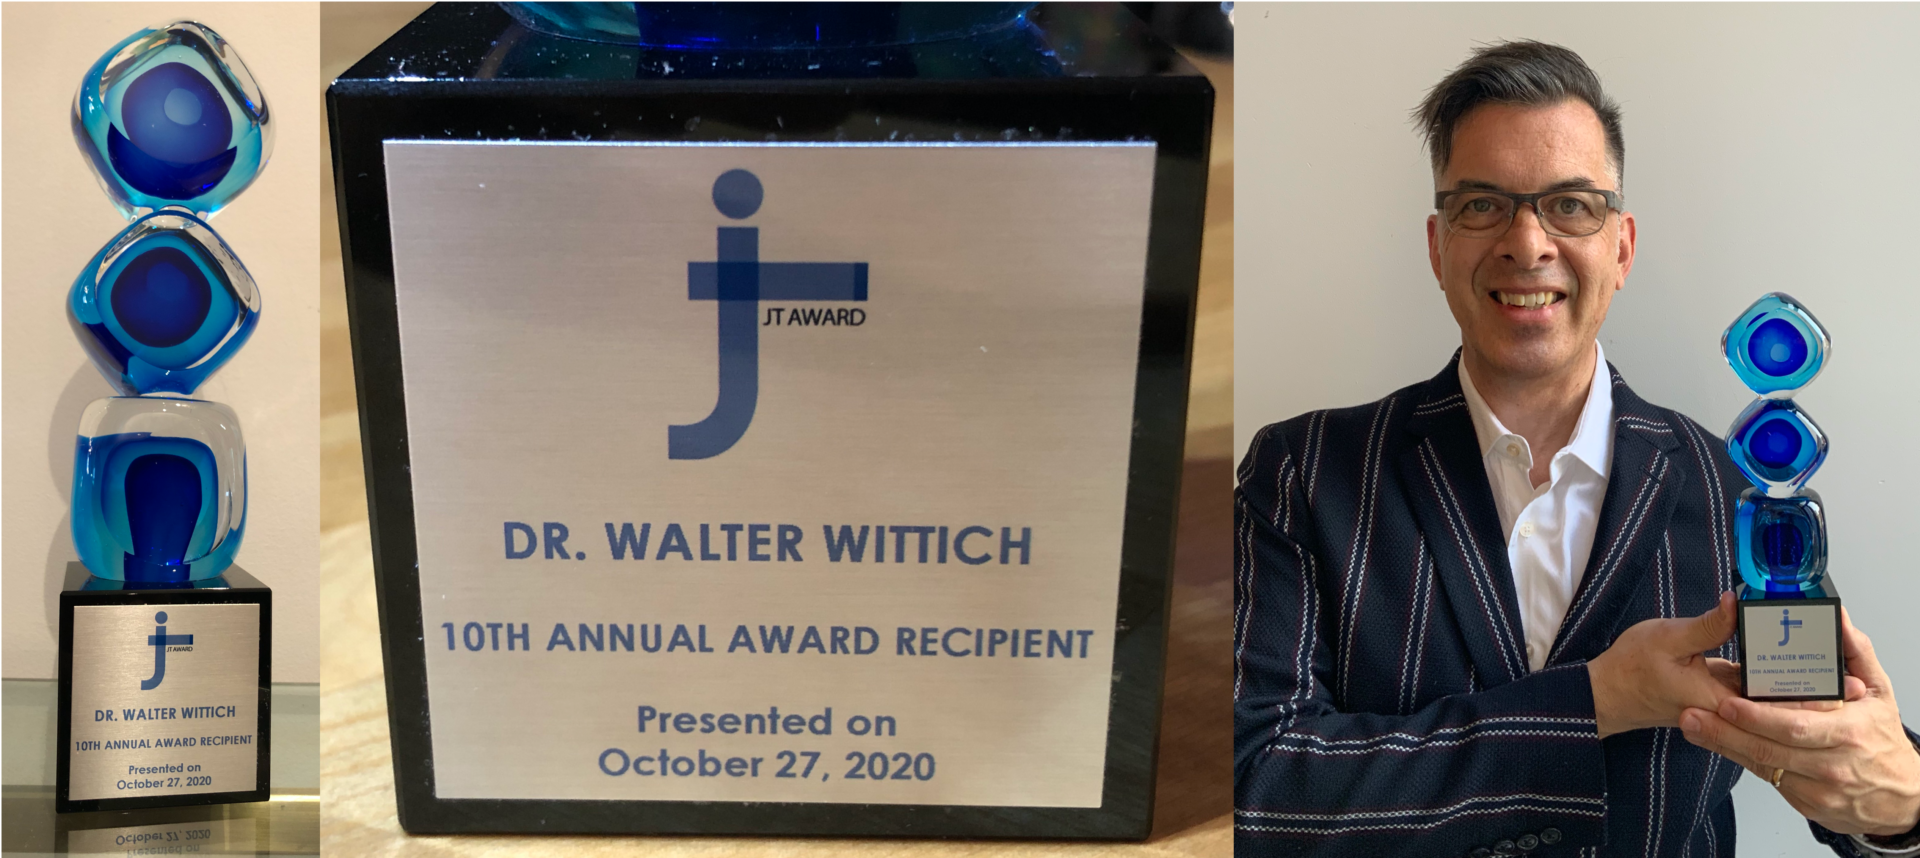 Combination of photos. From left to right: The full JT Award. The plaque of the JT Award. Walter Wittich with his JT Award.